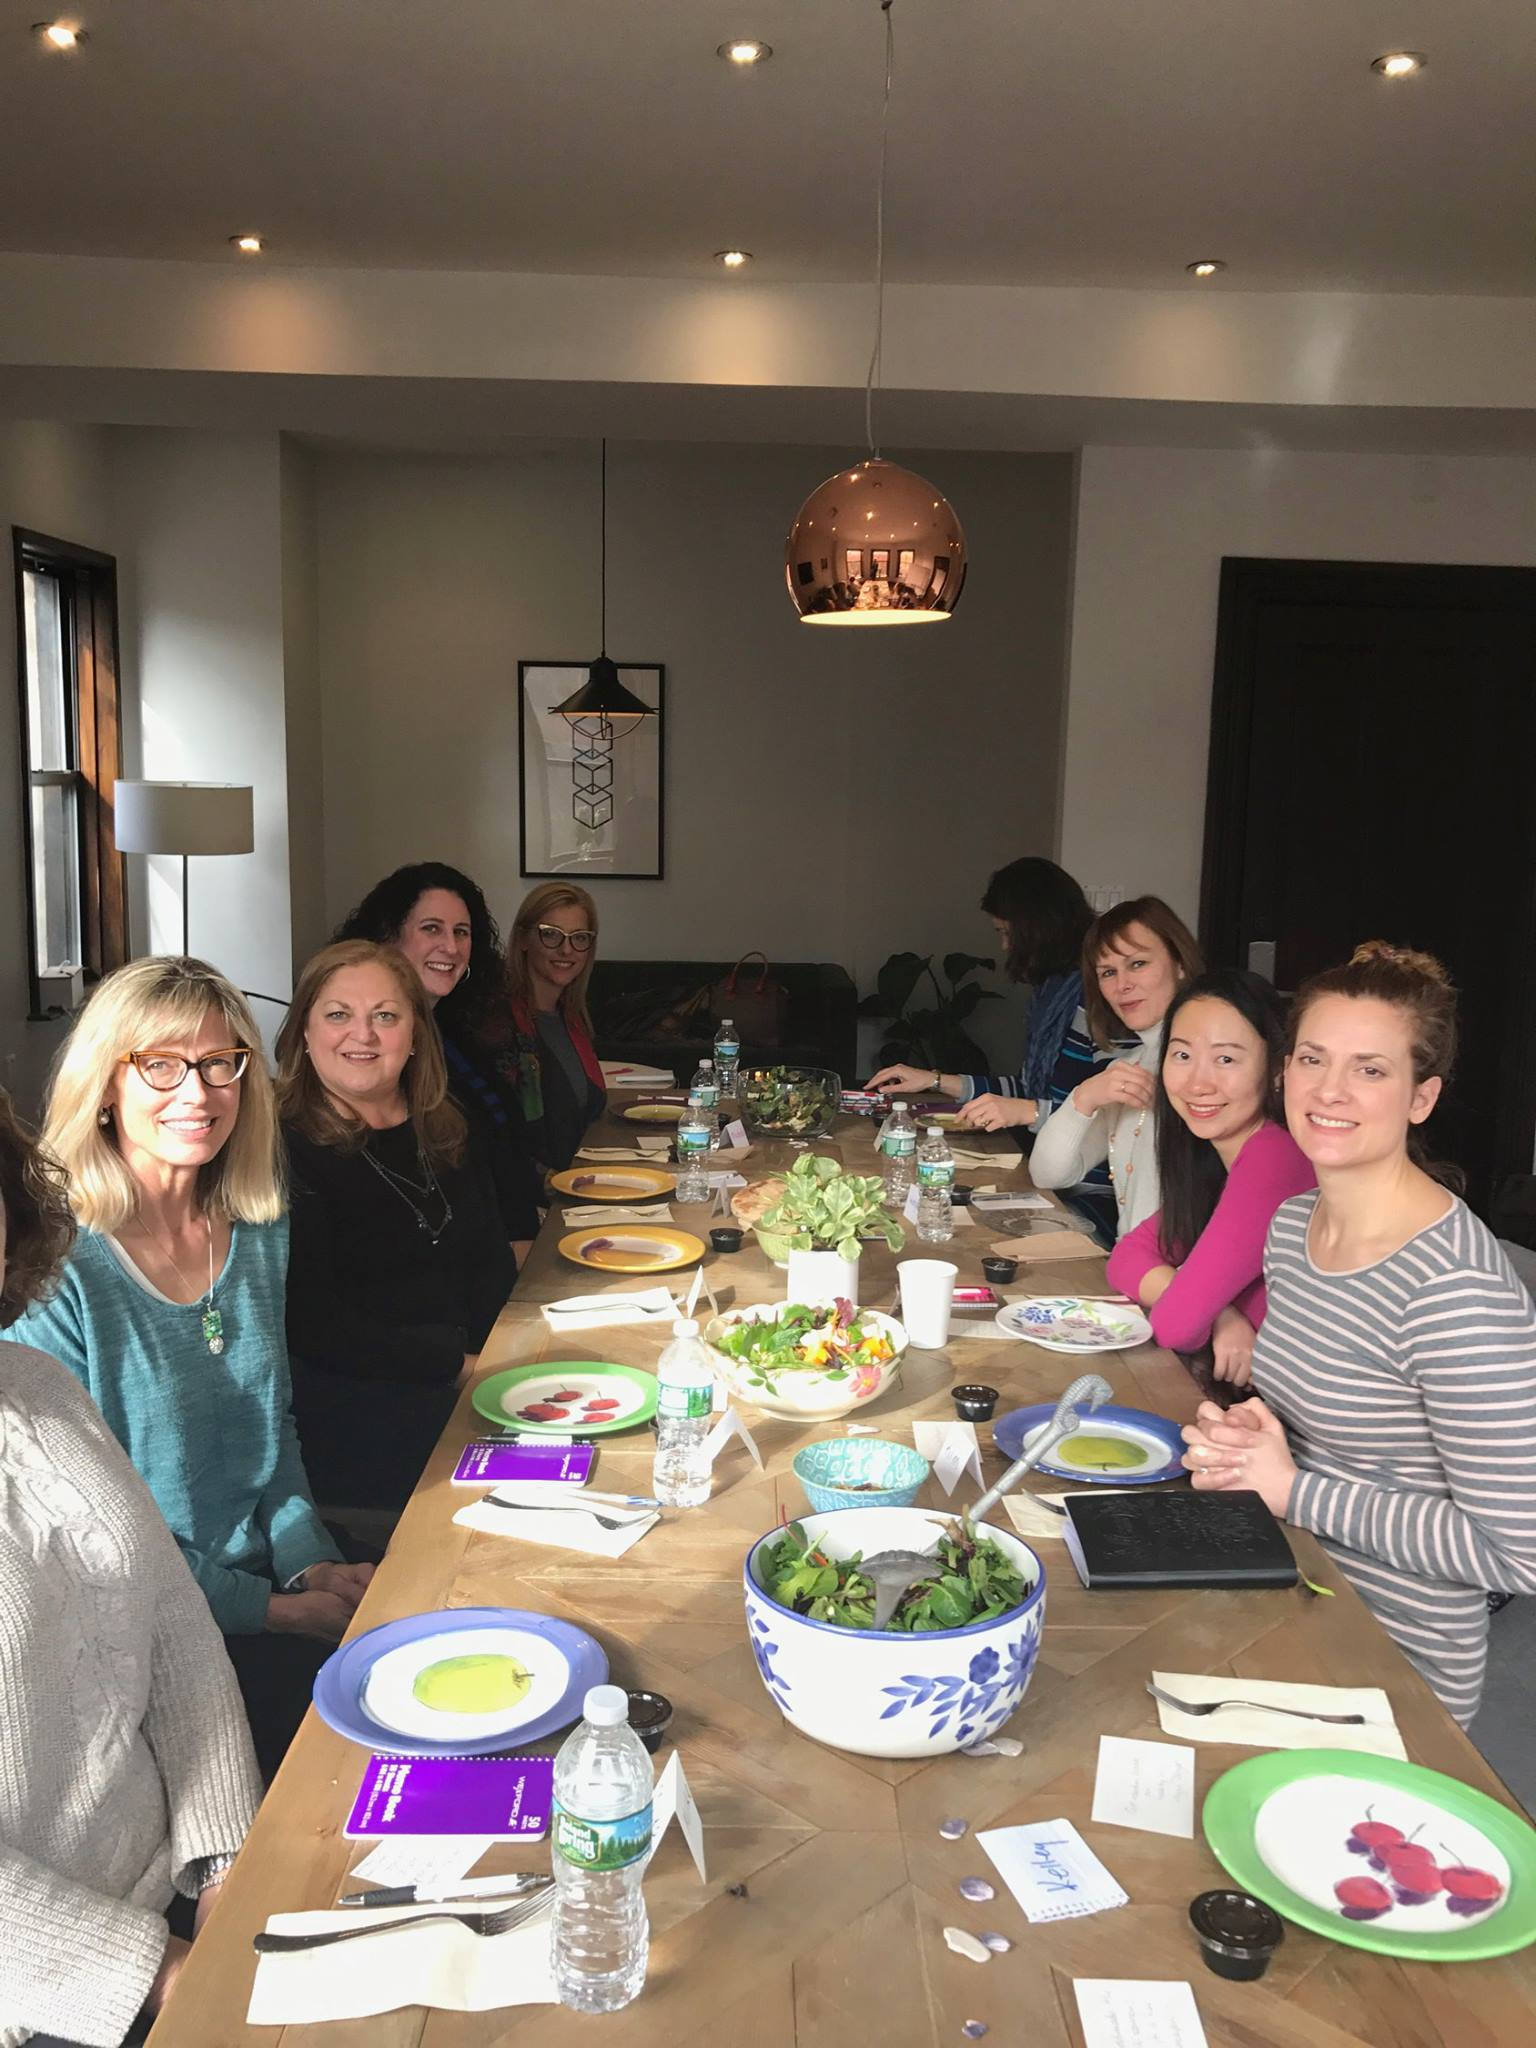 Brave Moves with Professional Working Women in our Back Bay town house, January 2016.